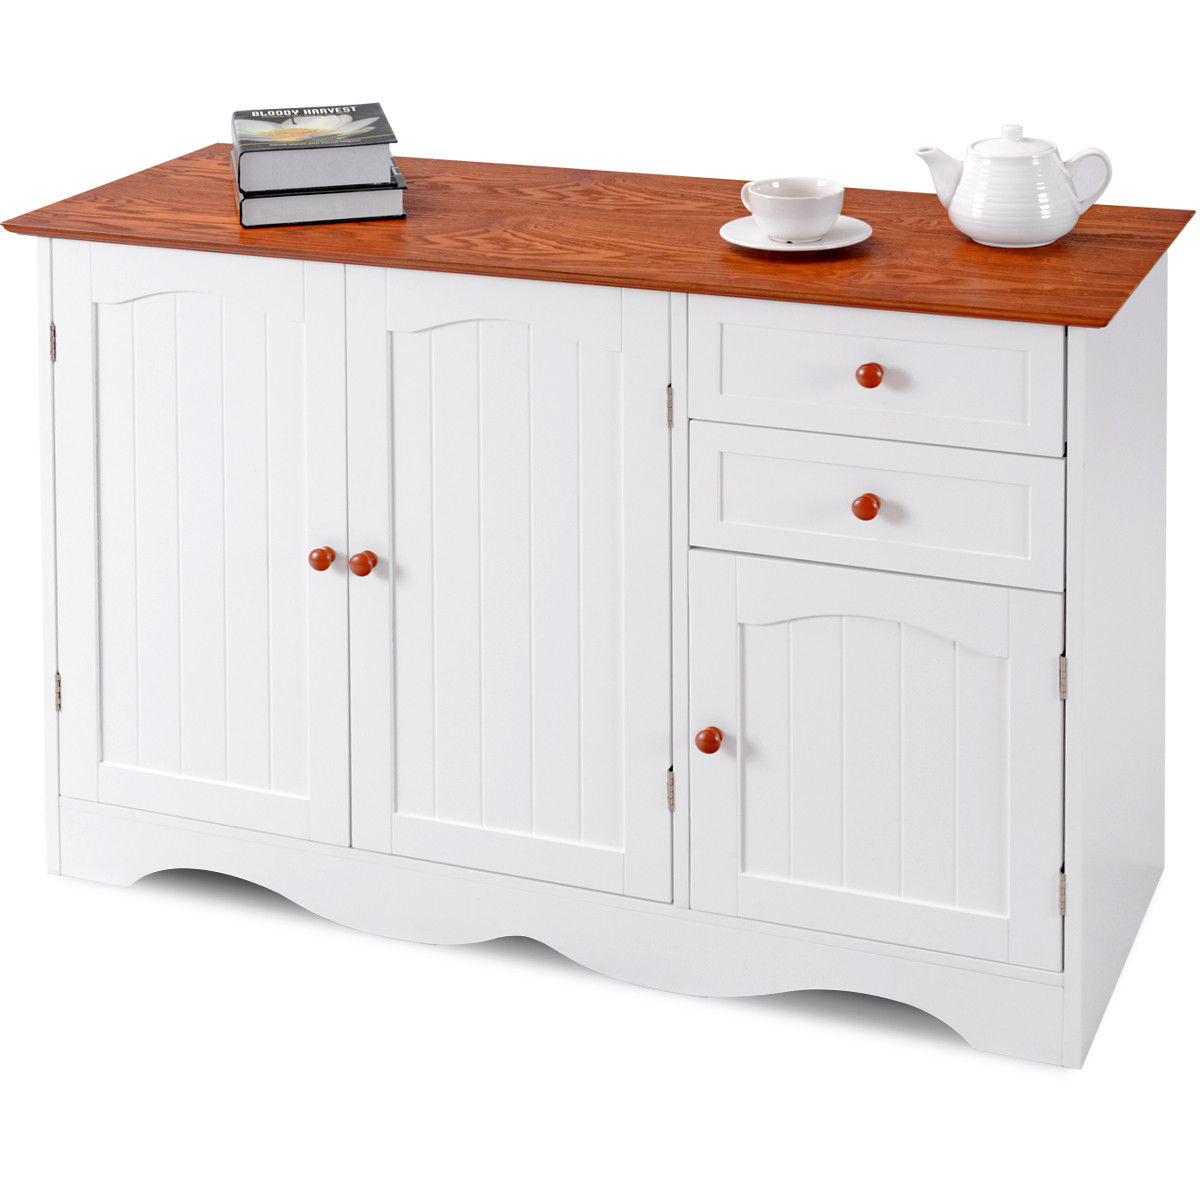 Gymax Buffet Storage Cabinet Console Table Kitchen Sideboardd Home Furni W/2 Drawers